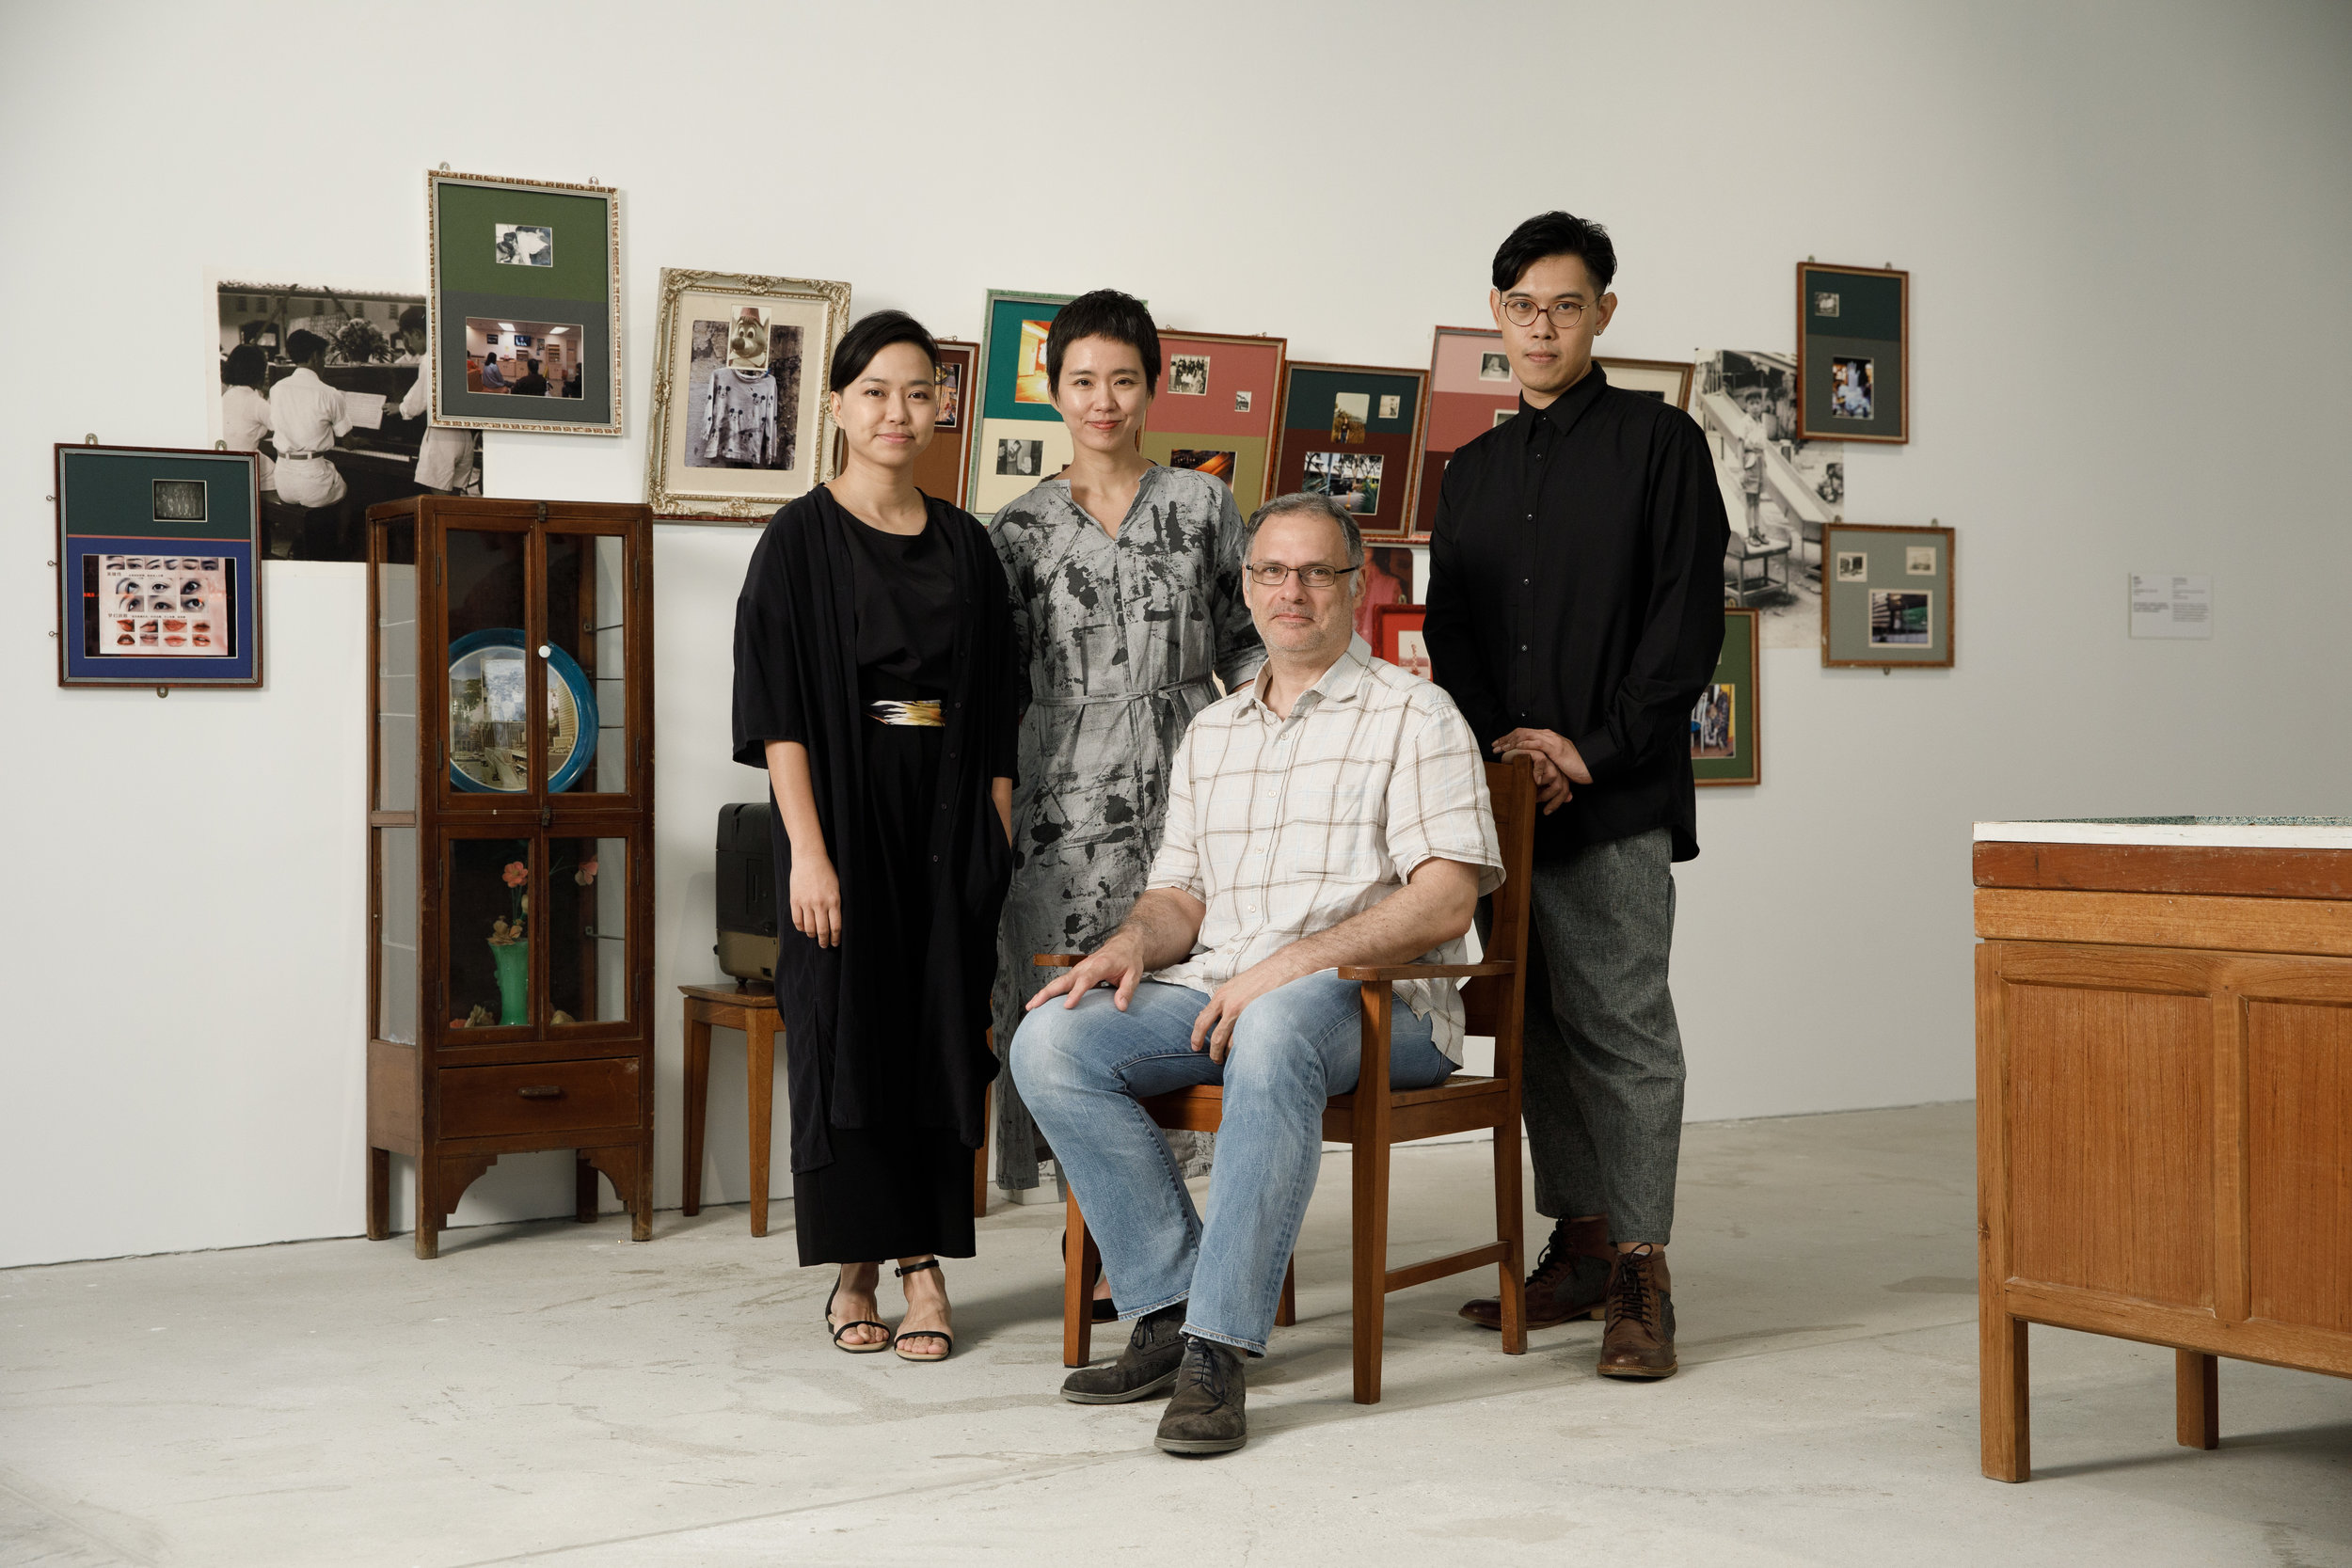 Frank Vigneron, Yim Sui Fong 嚴瑞芳, Eddie Cheung 張煒森, Wendy Wo 胡敏儀. Tai Kwun Exhibition. Hong Kong. 2018